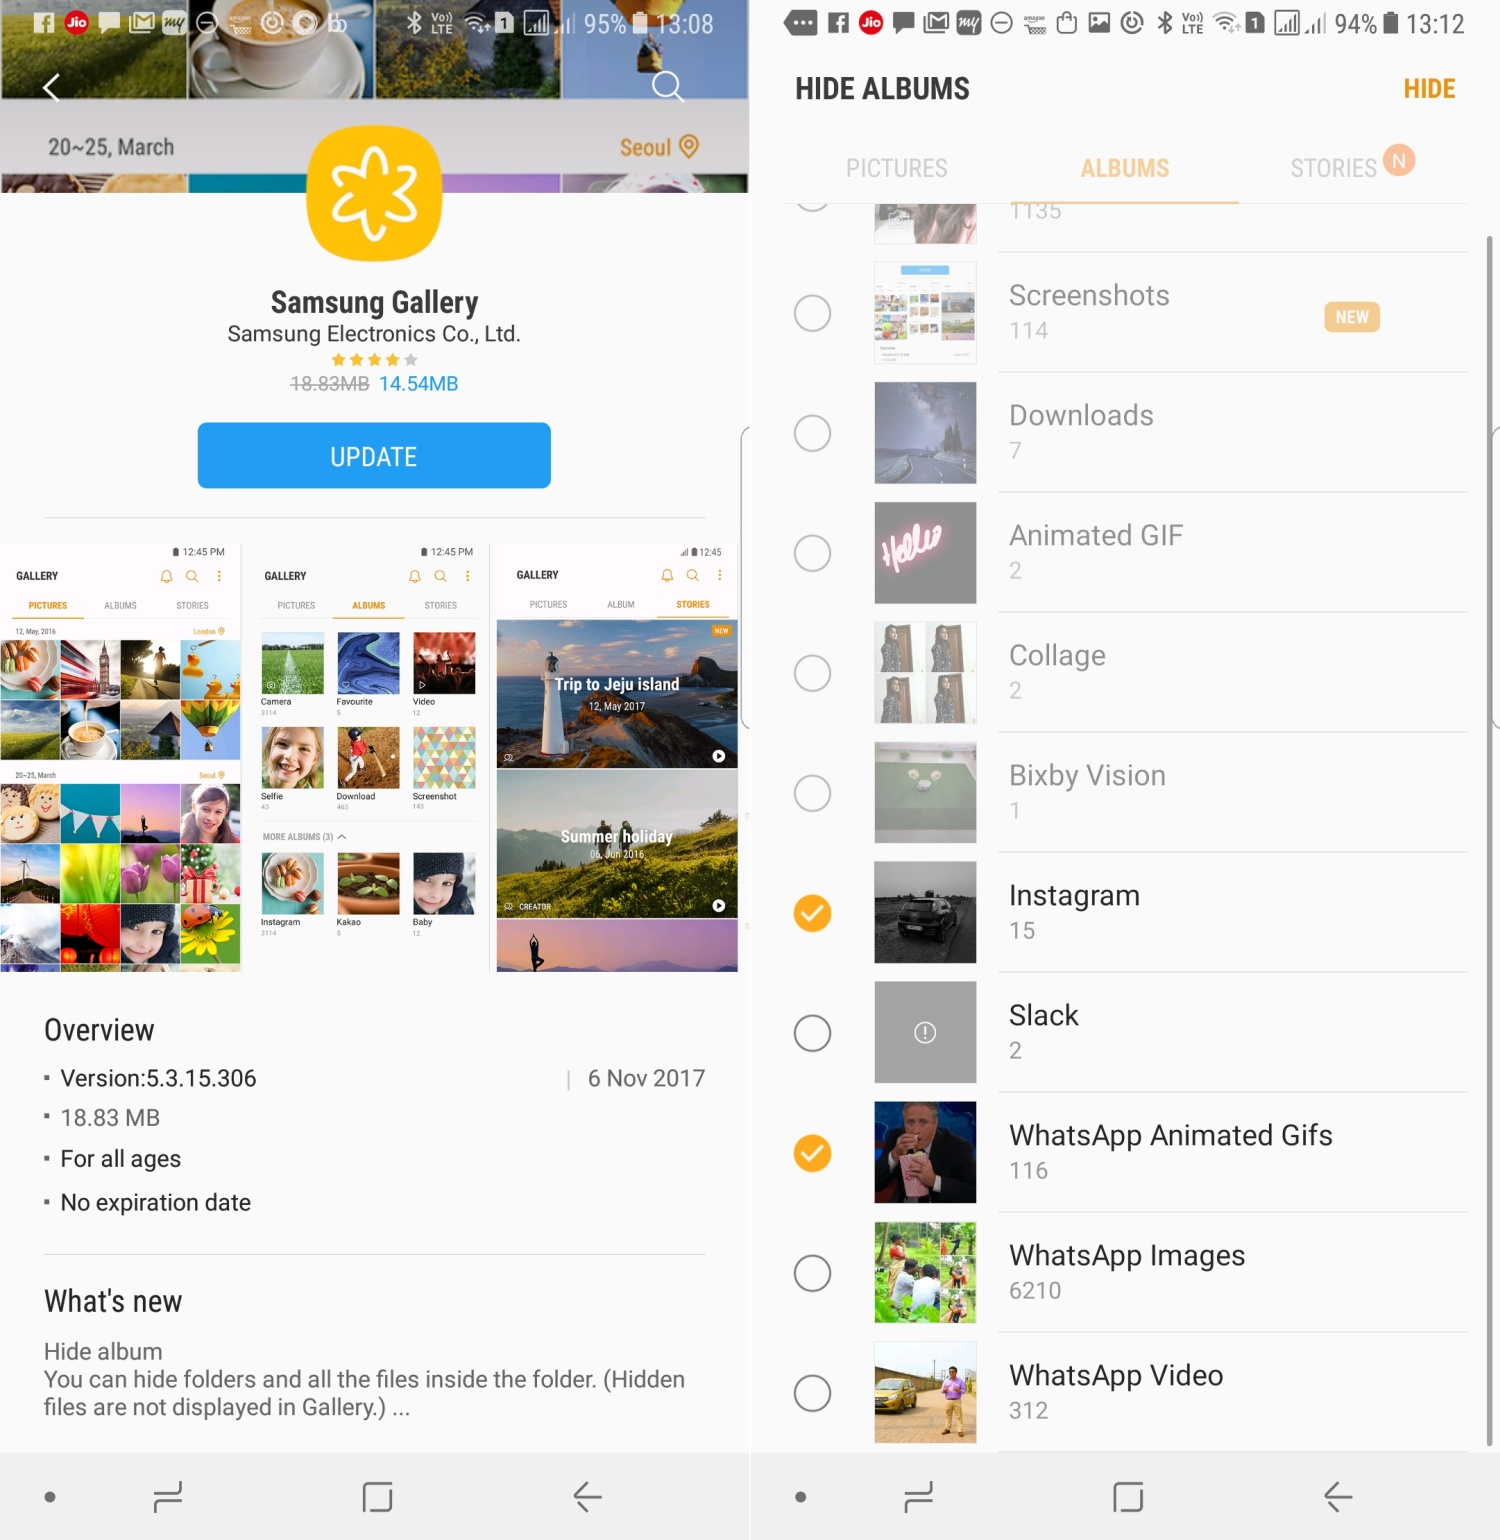 Samsung Gallery app updated with ability to hide albums